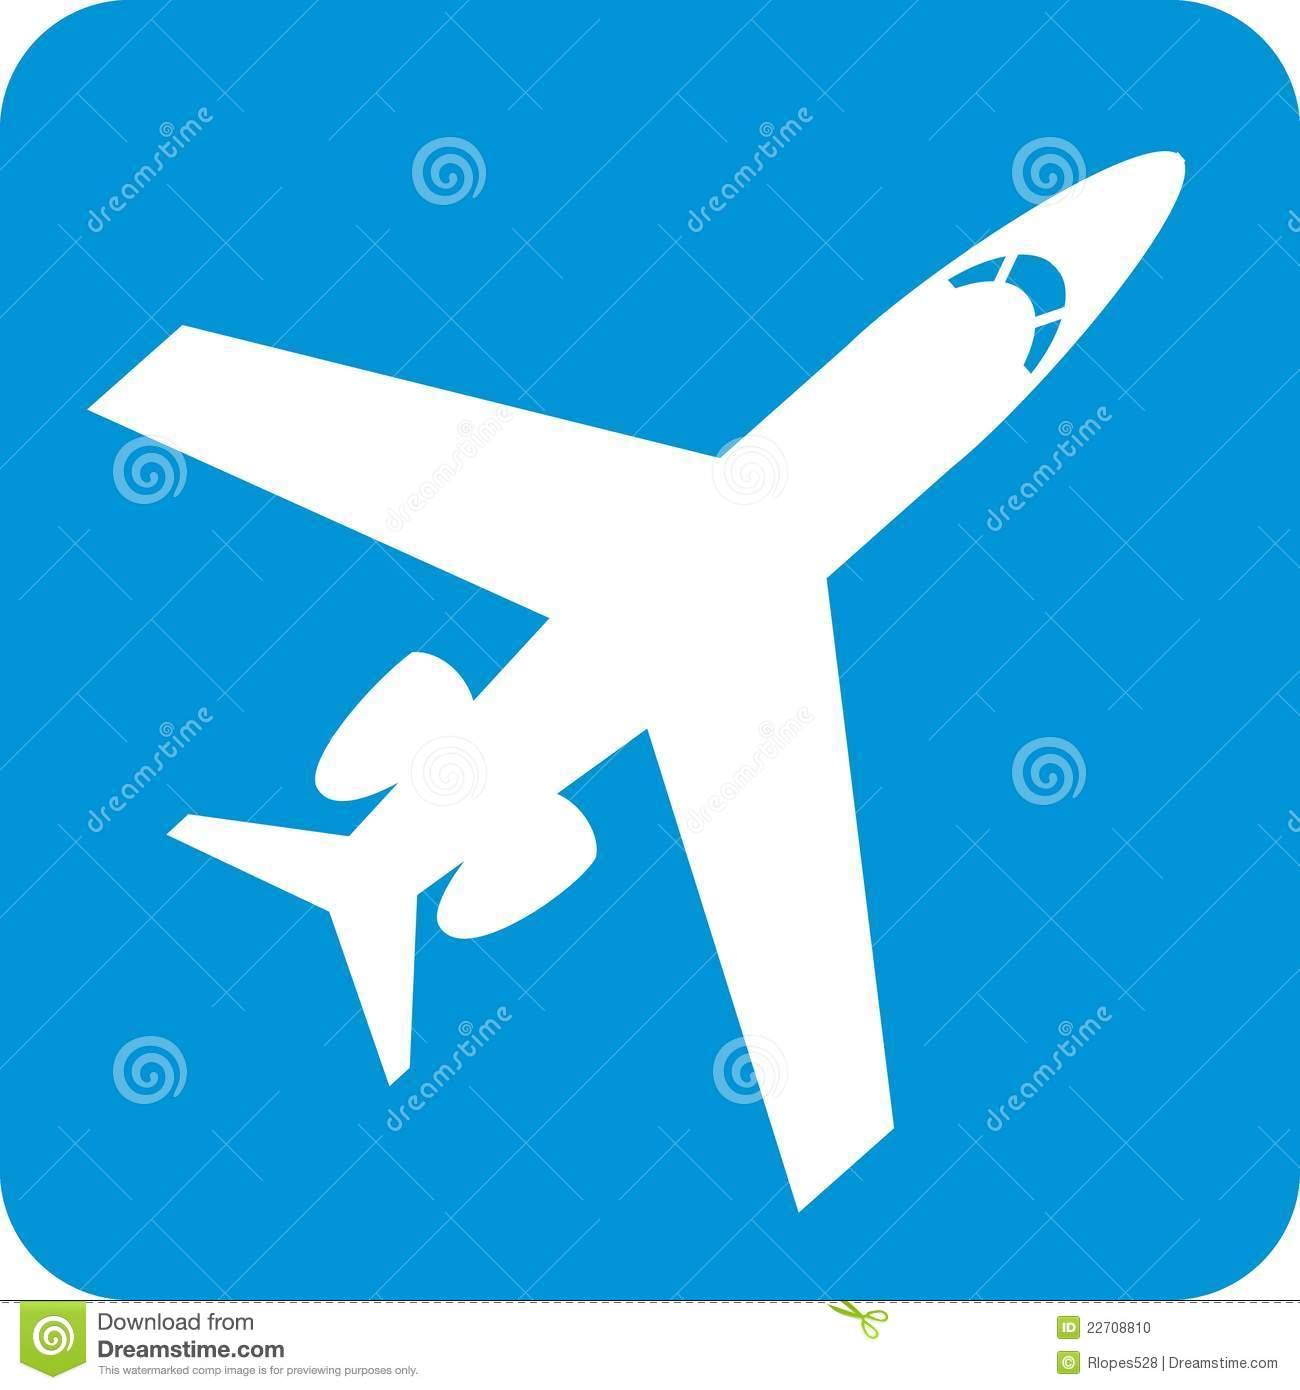 blue airplane symbol stock photo image 22708810